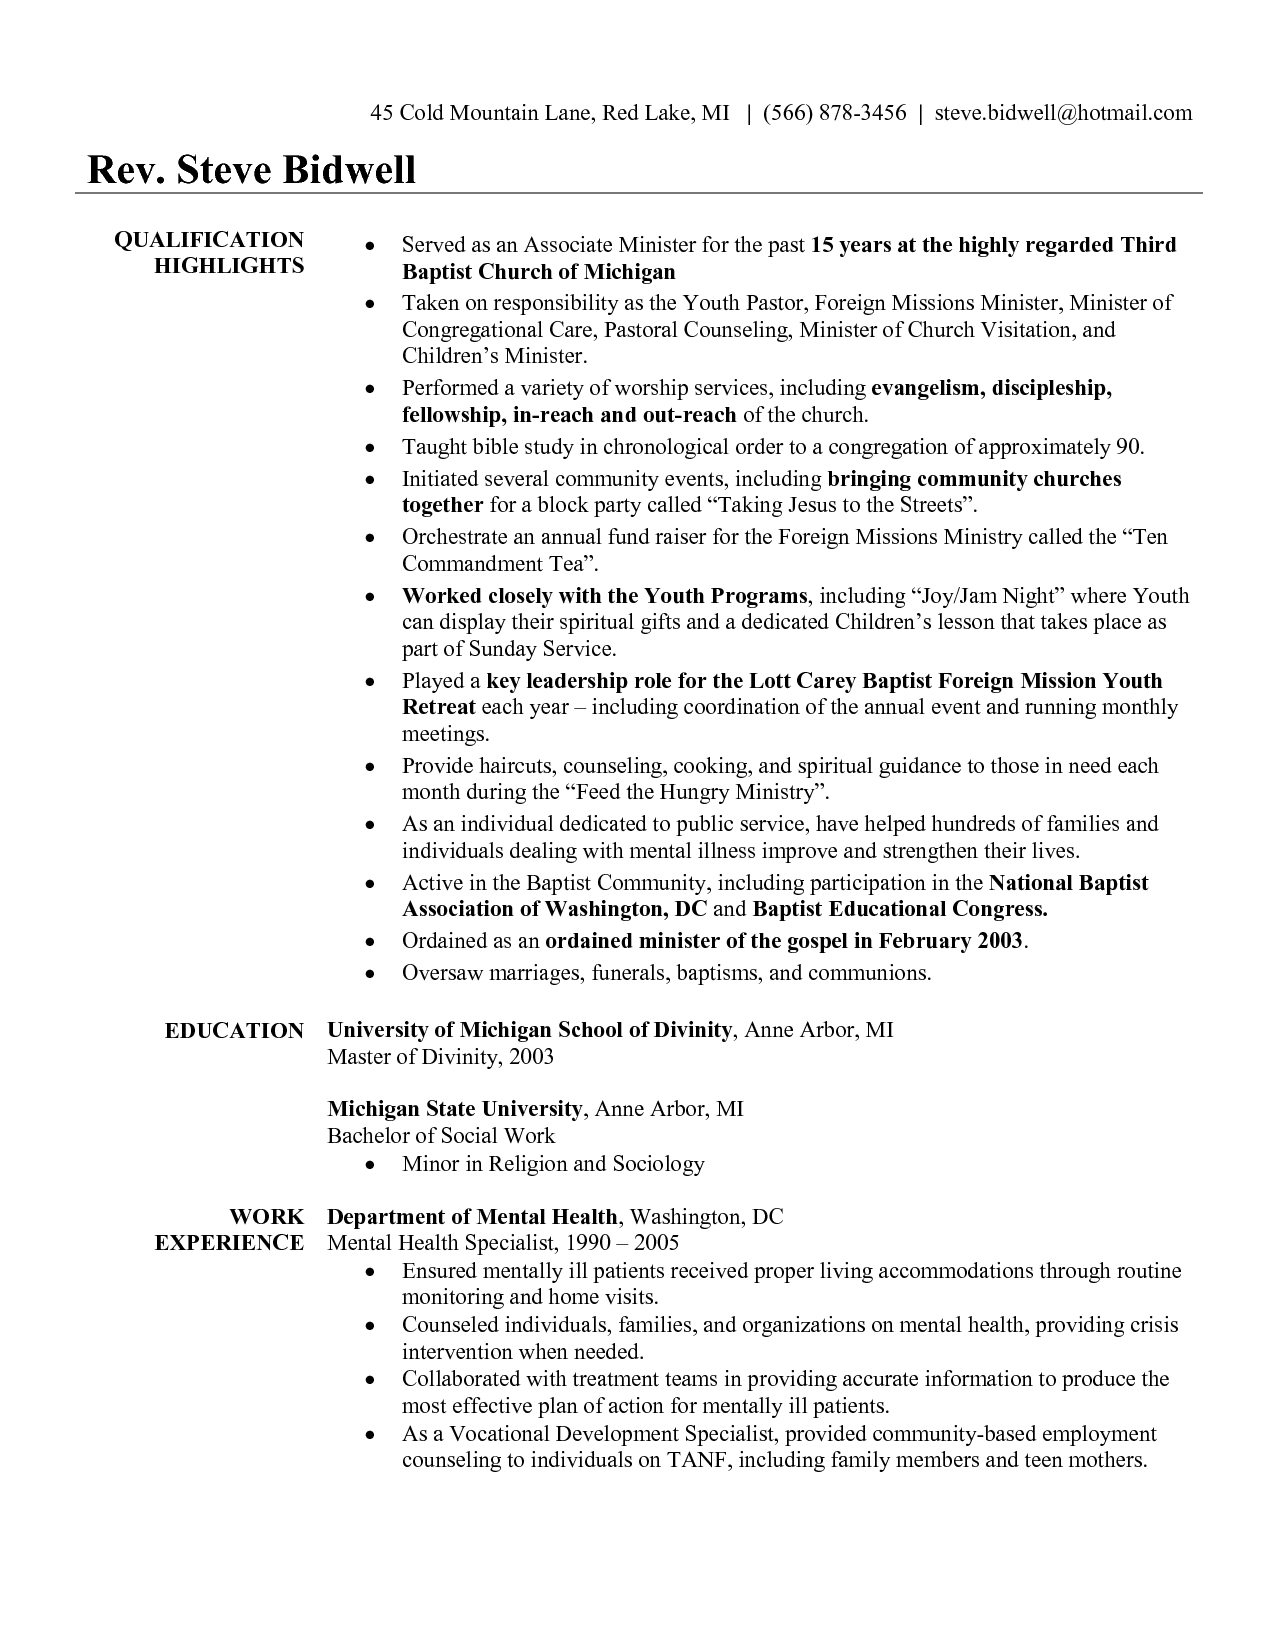 Resume Templates Youth Central Resume Templates Resume Examples Resume Templates Sample Resume Templates